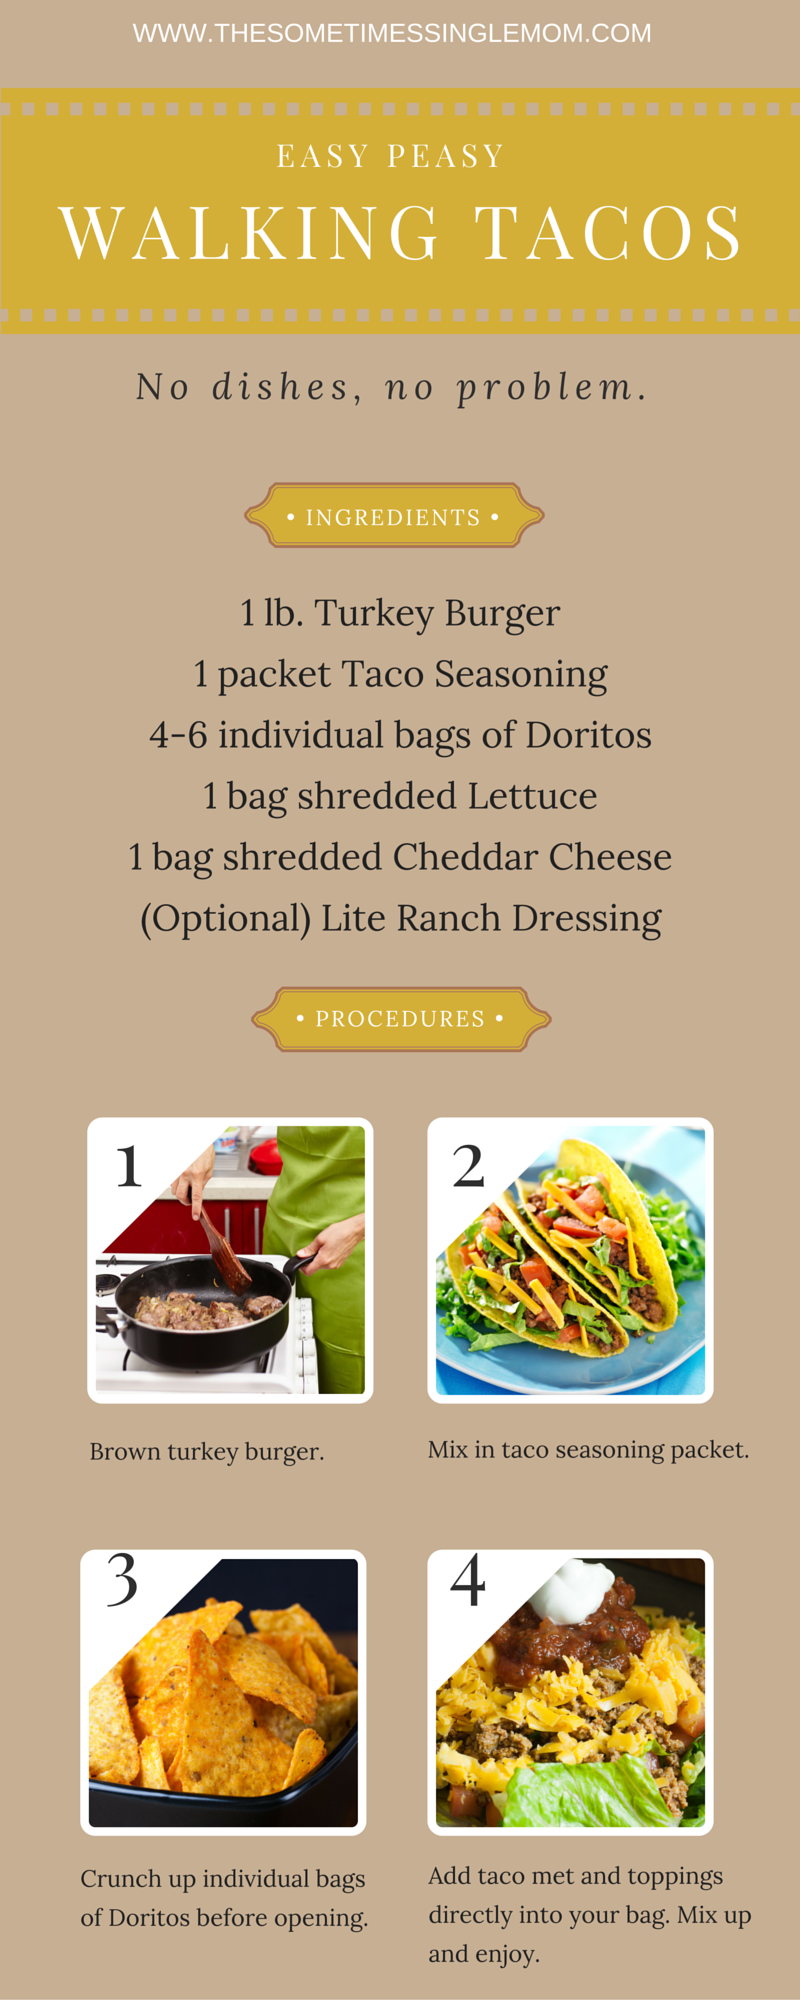 Walking_taco_recipe